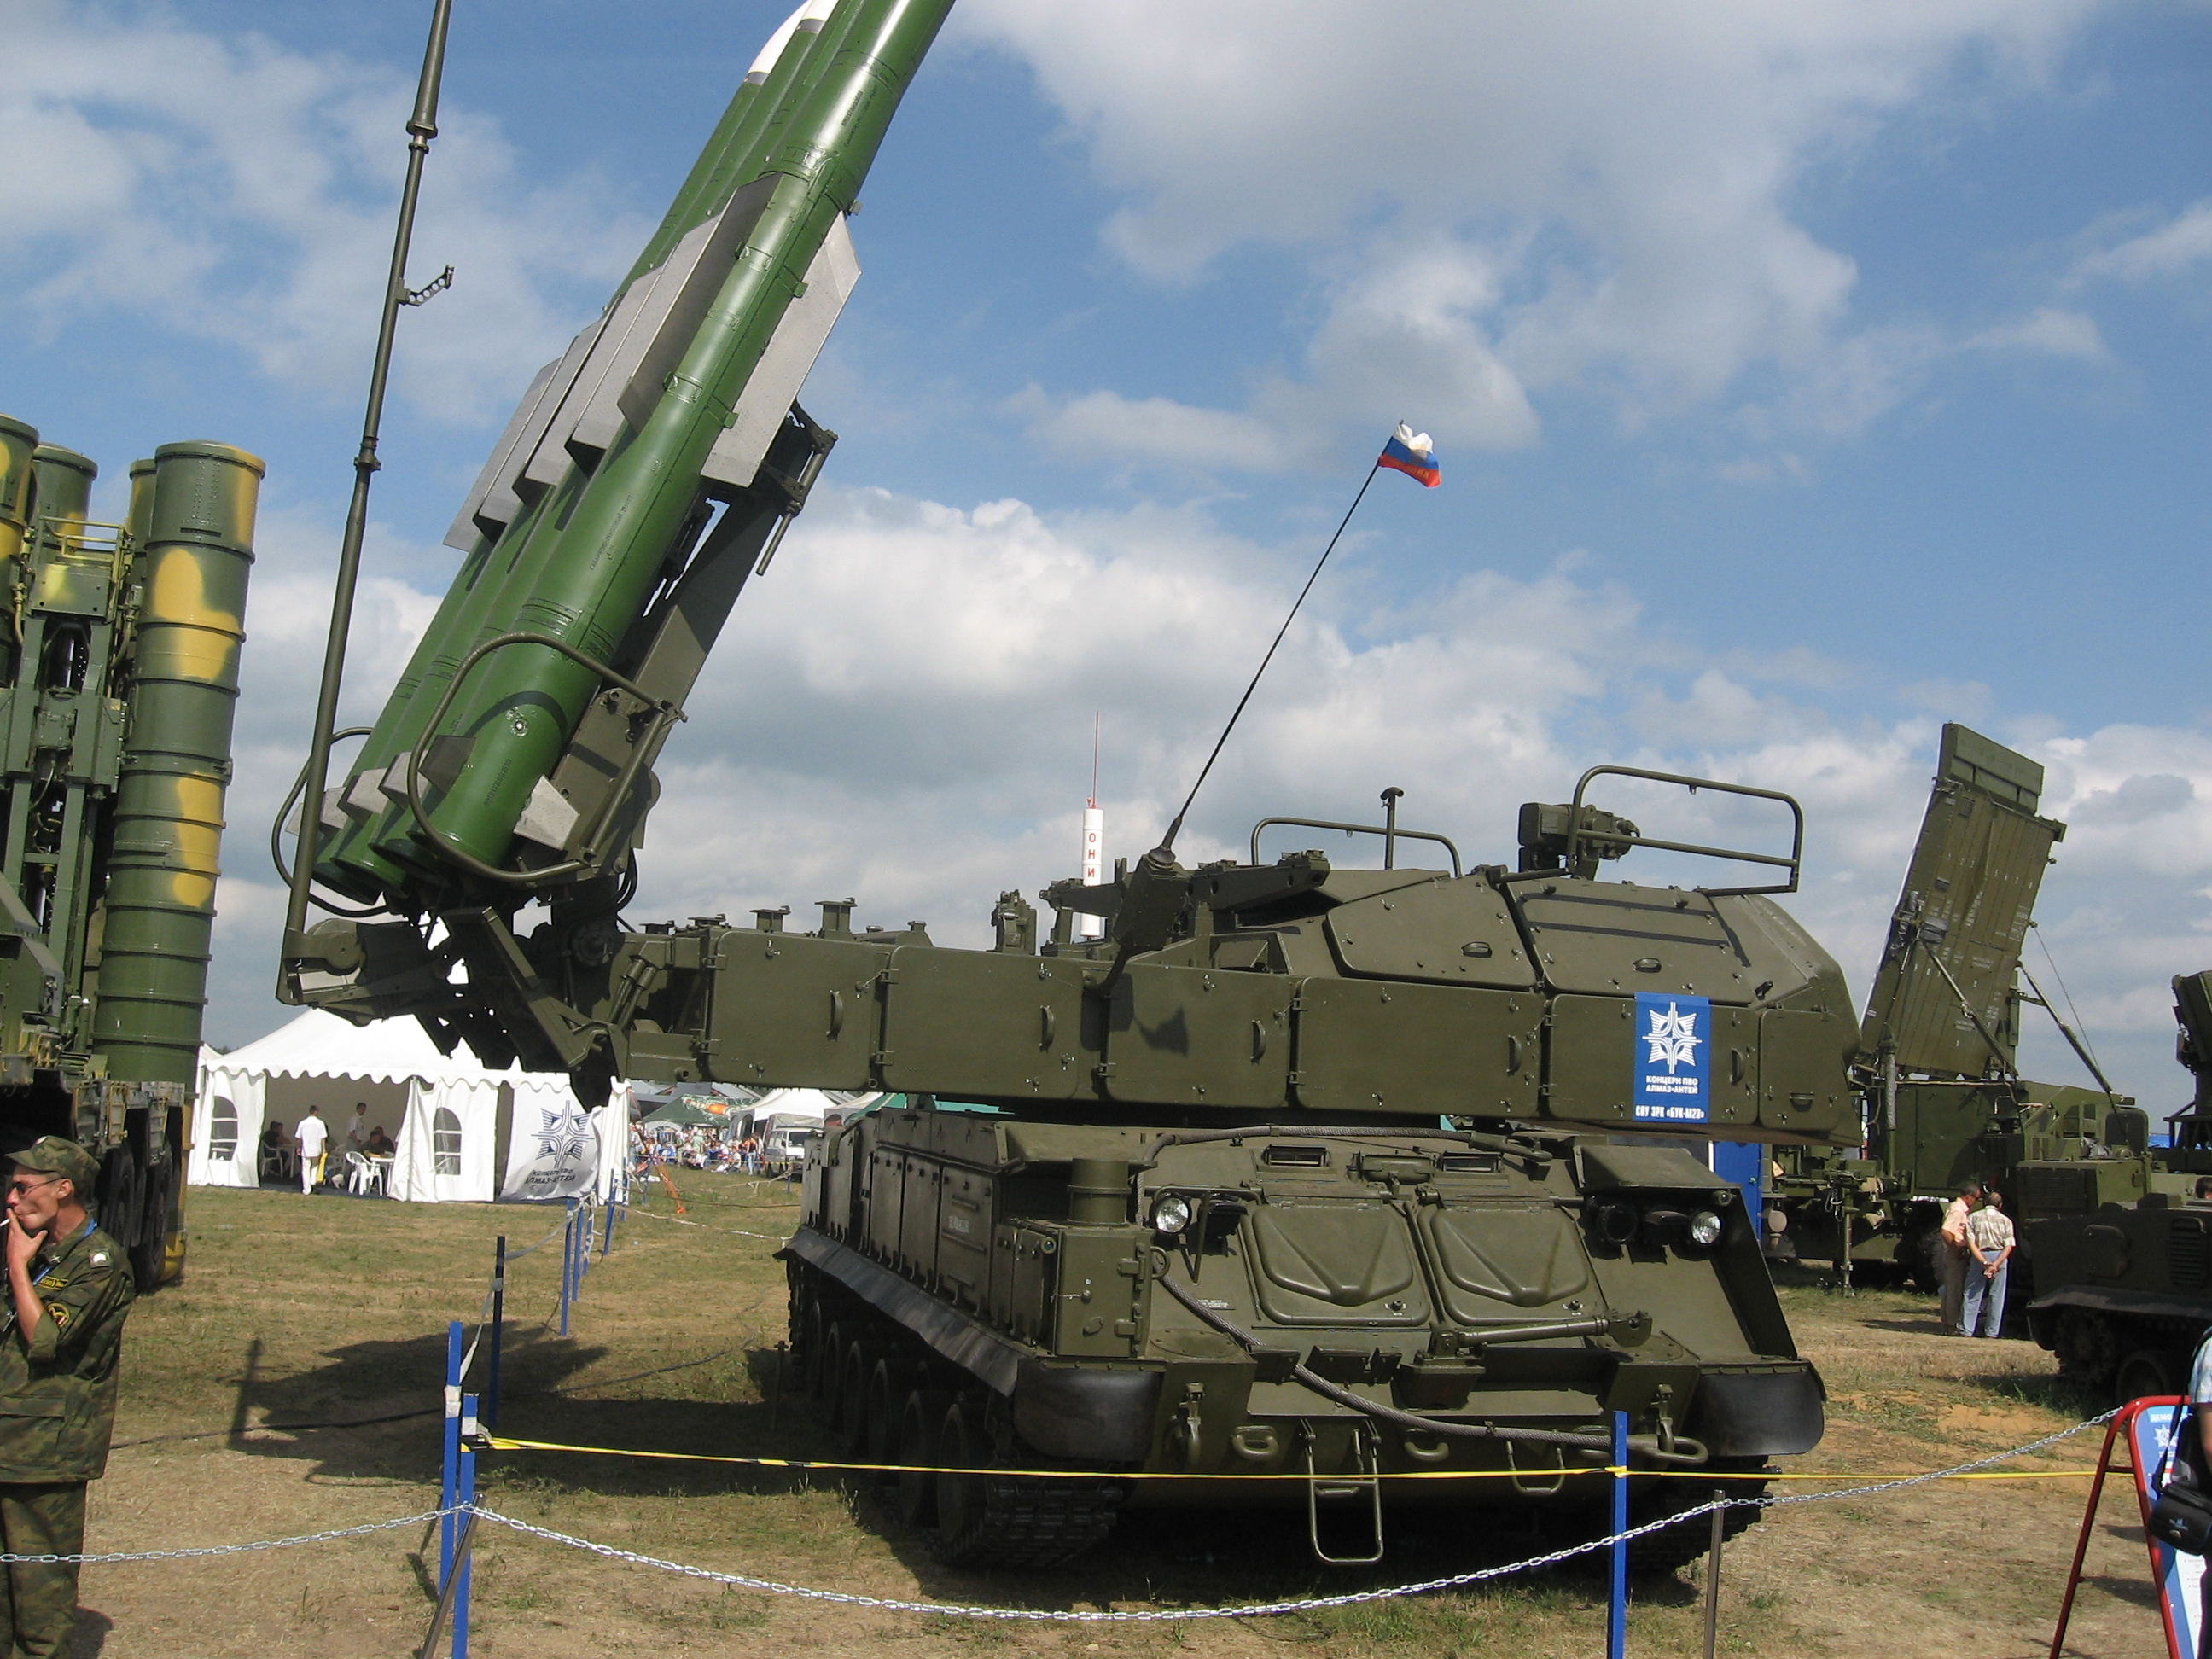 http://upload.wikimedia.org/wikipedia/commons/c/c4/Buk-M2-MAKS-2007.jpg